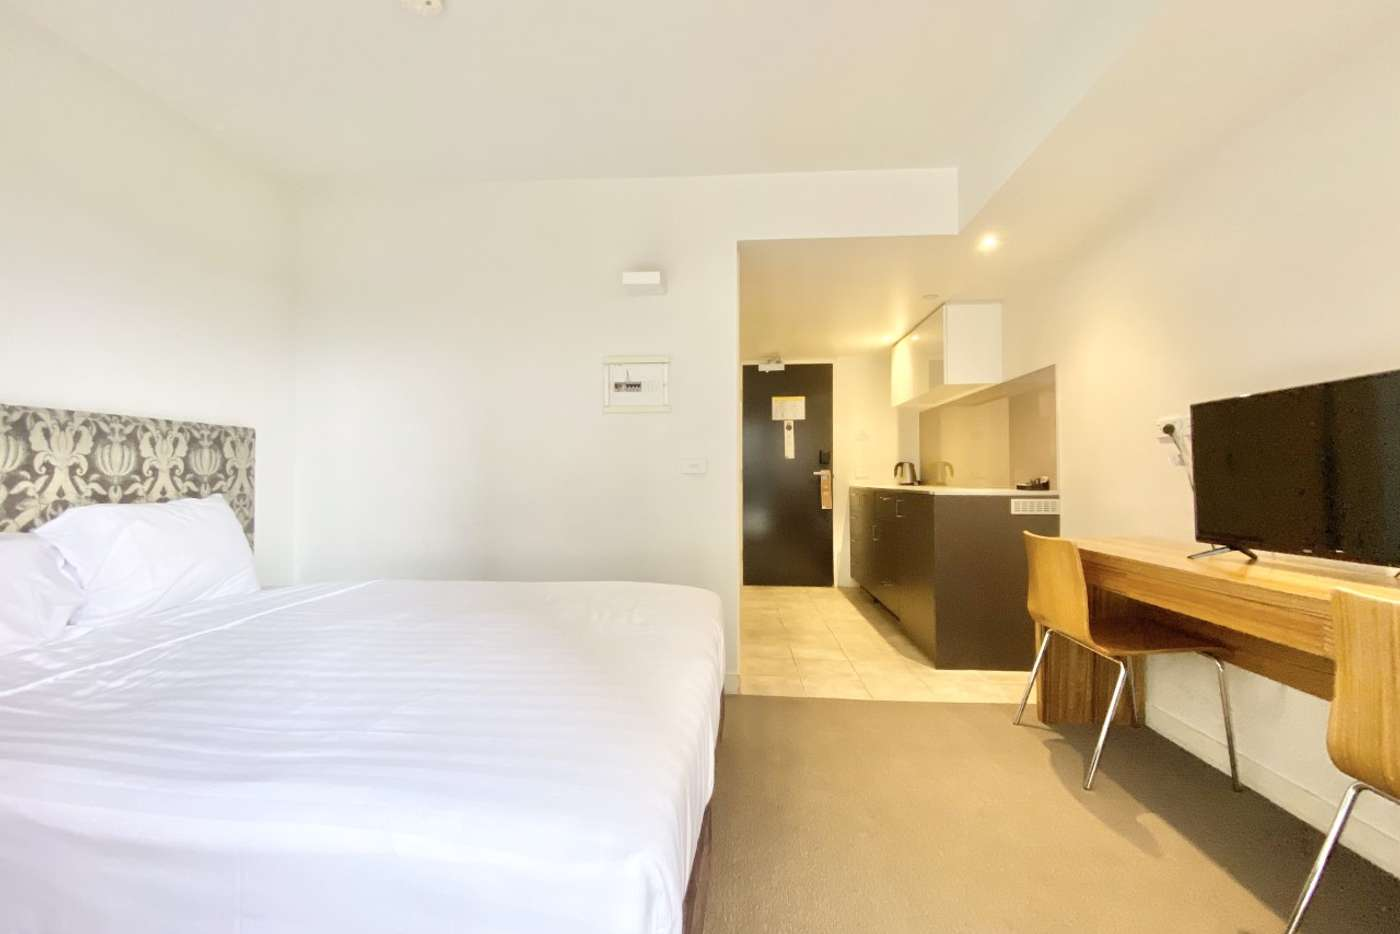 Sixth view of Homely studio listing, 432/572 St Kilda Road, Melbourne VIC 3004